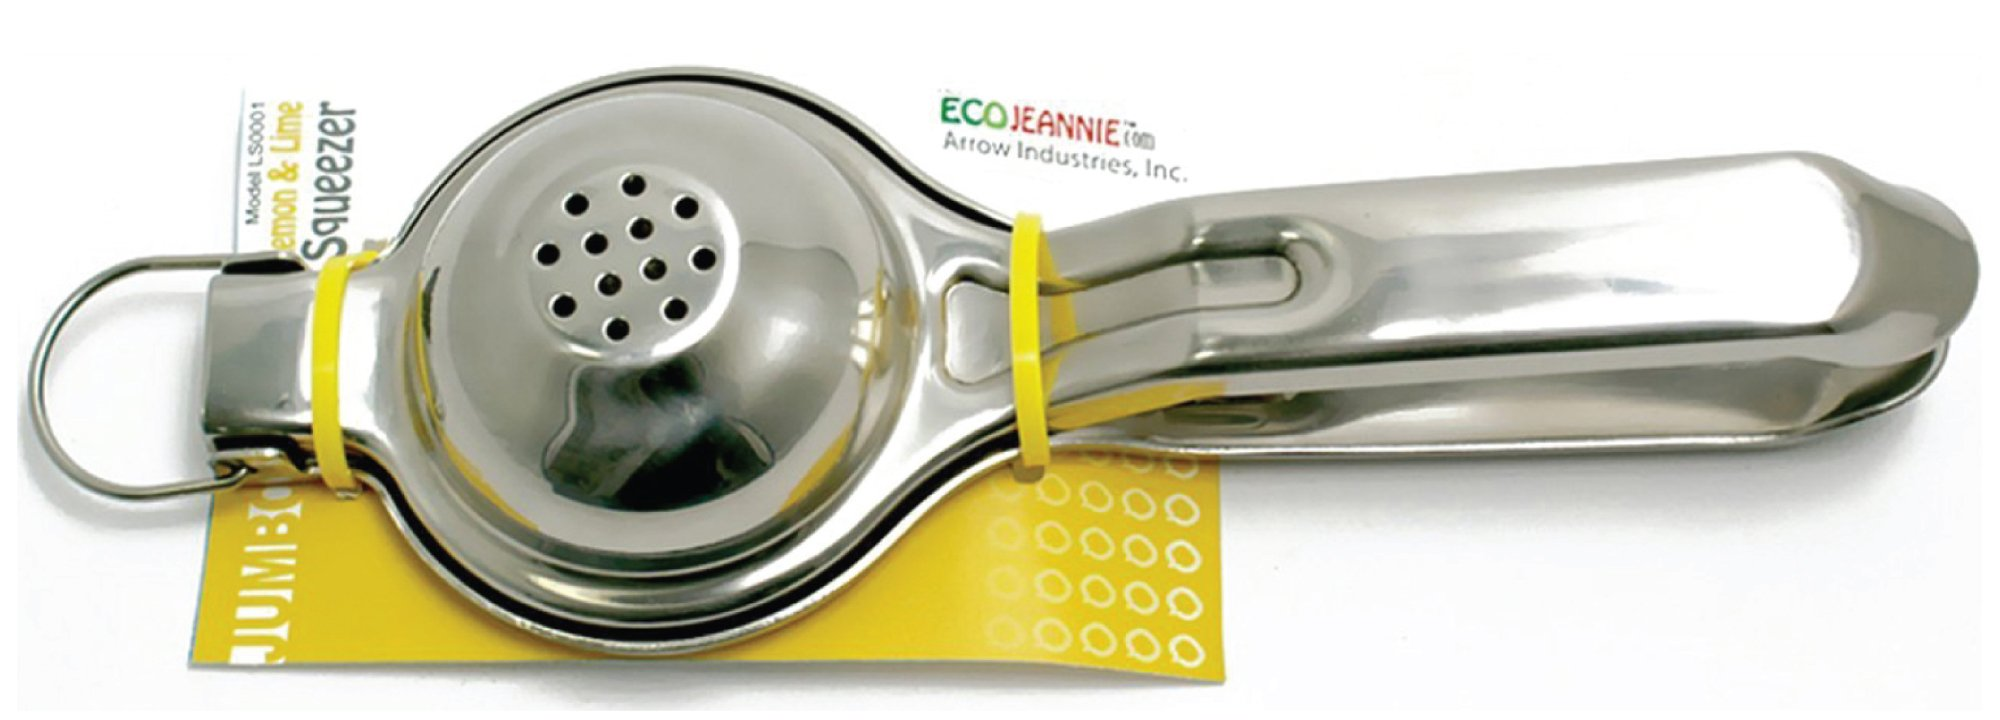 EcoJeannie LS0001 Professional Jumbo Stainless Steel Lemon and Lime Squeezer and Juicer with Free Citrus Tap, 9.25-Inch, Silver by EcoJeannie (Image #5)